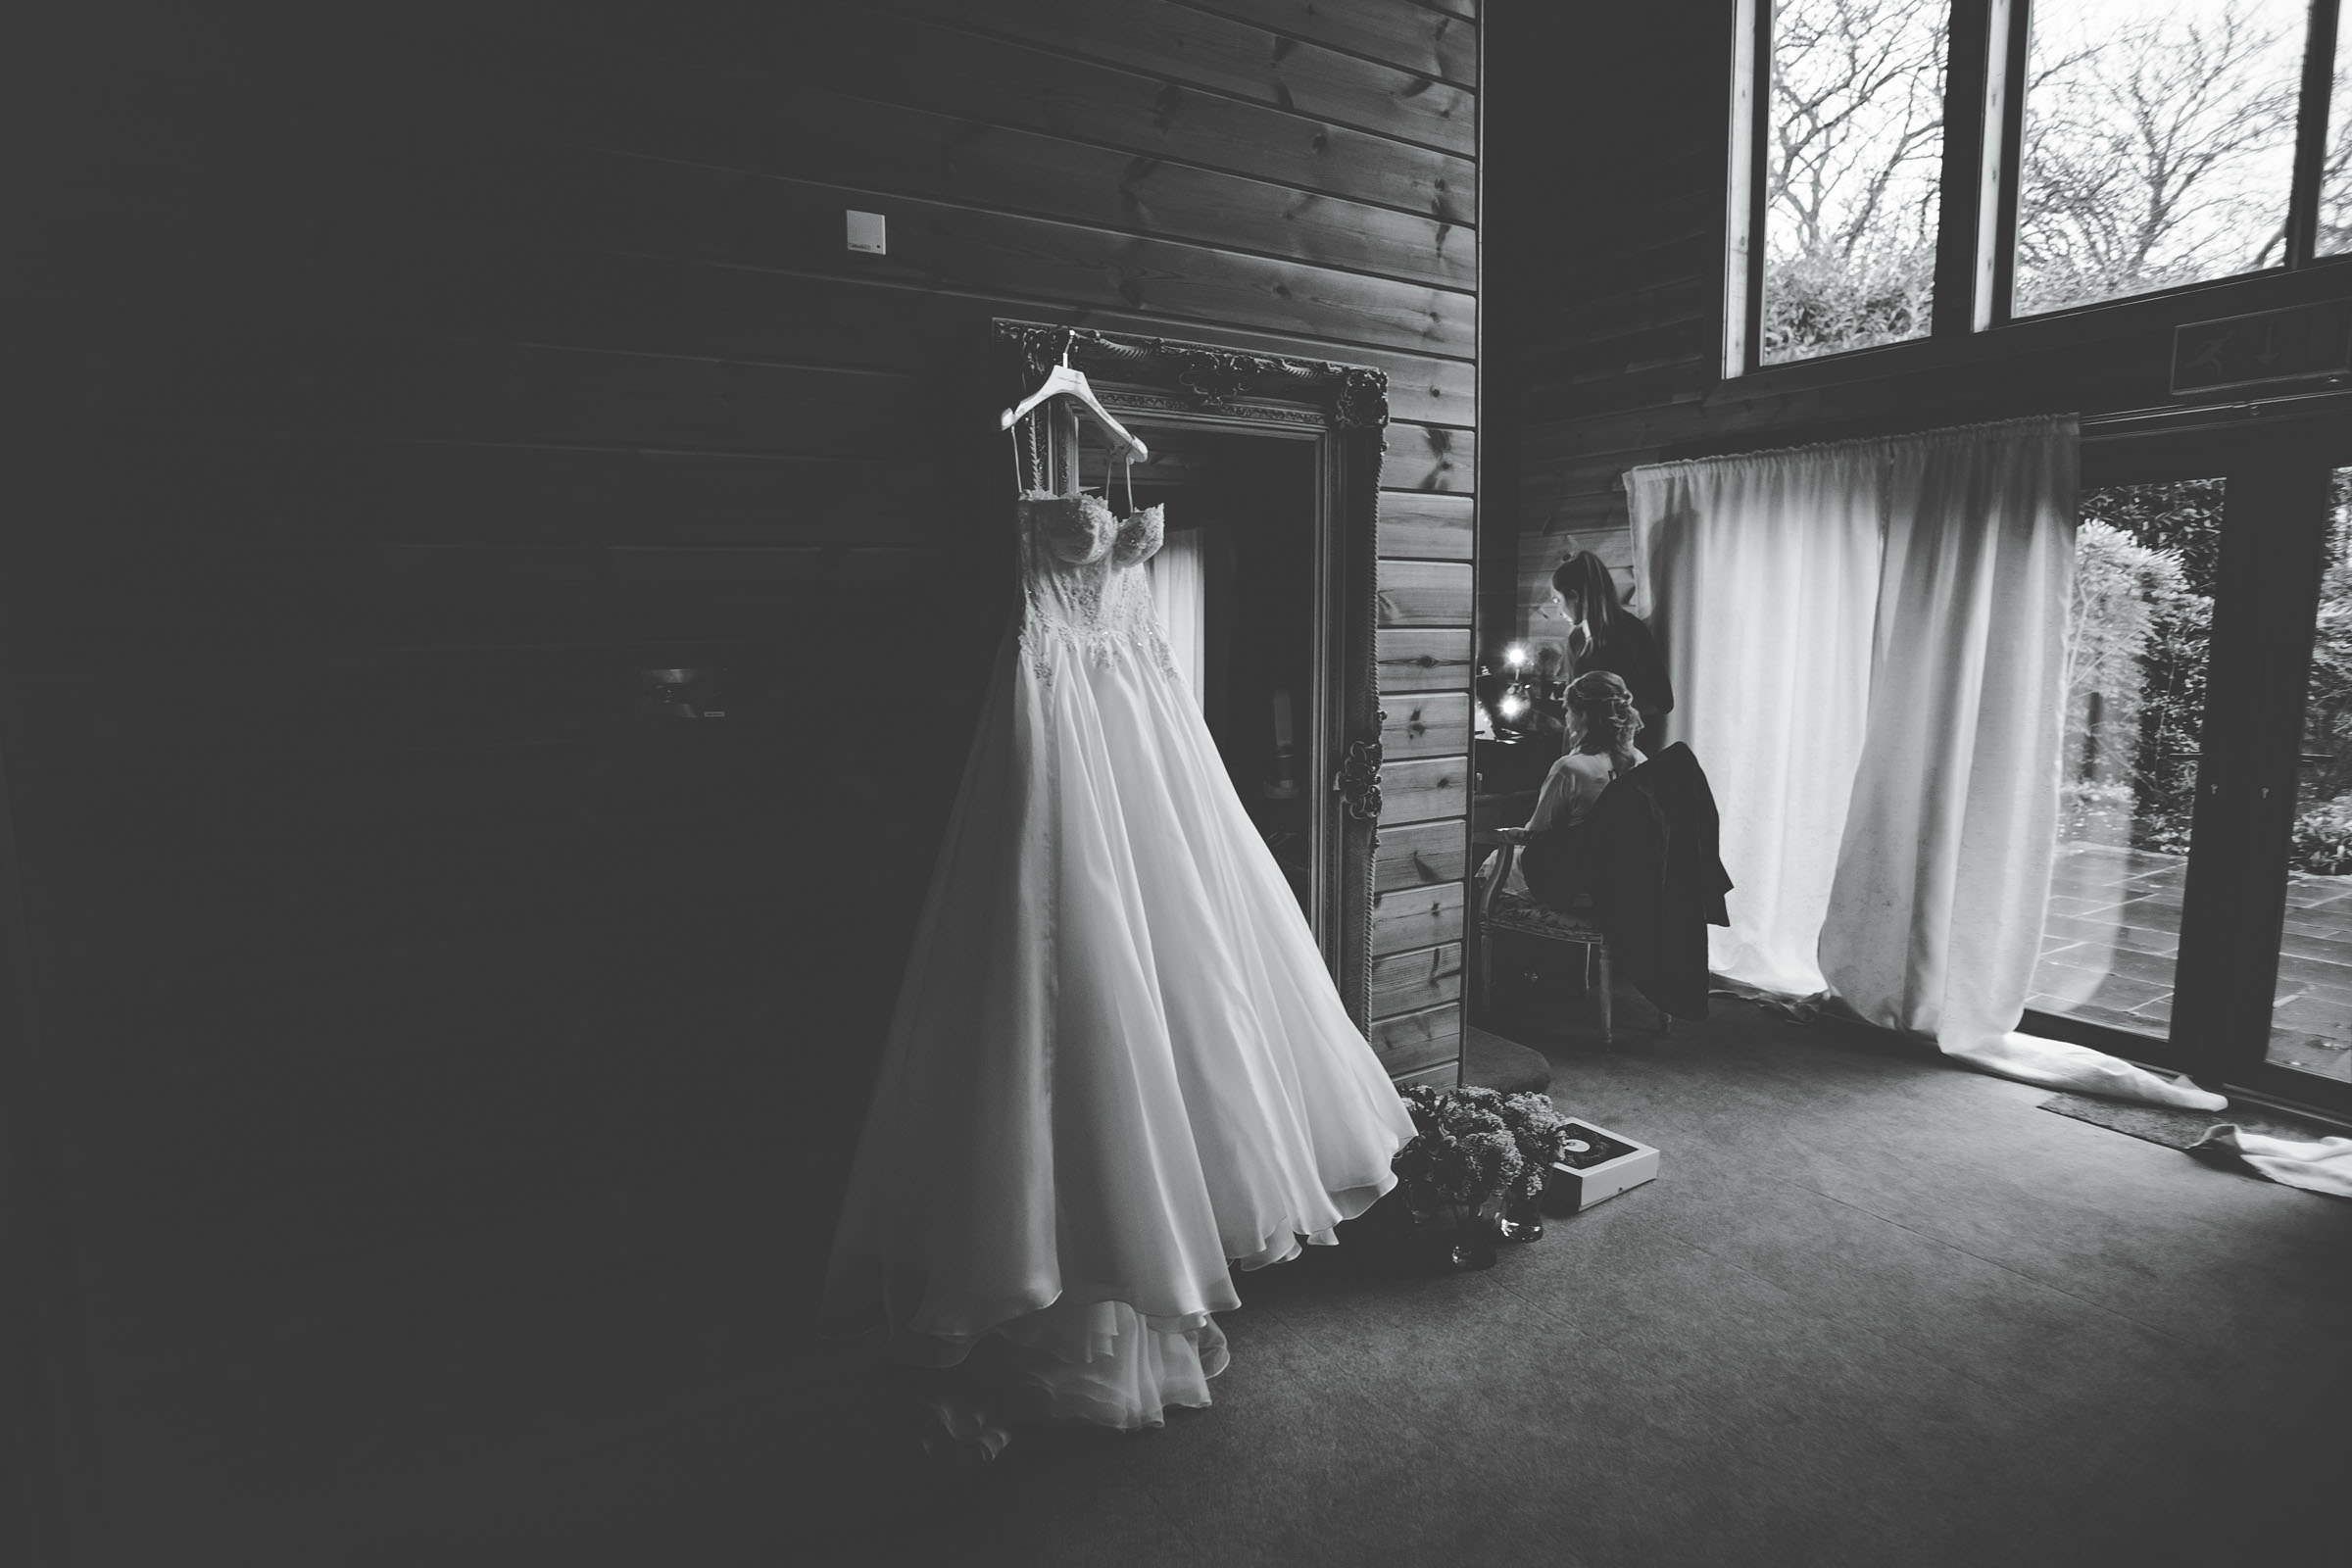 Wedding dress at Styal Lodge in Cheshire